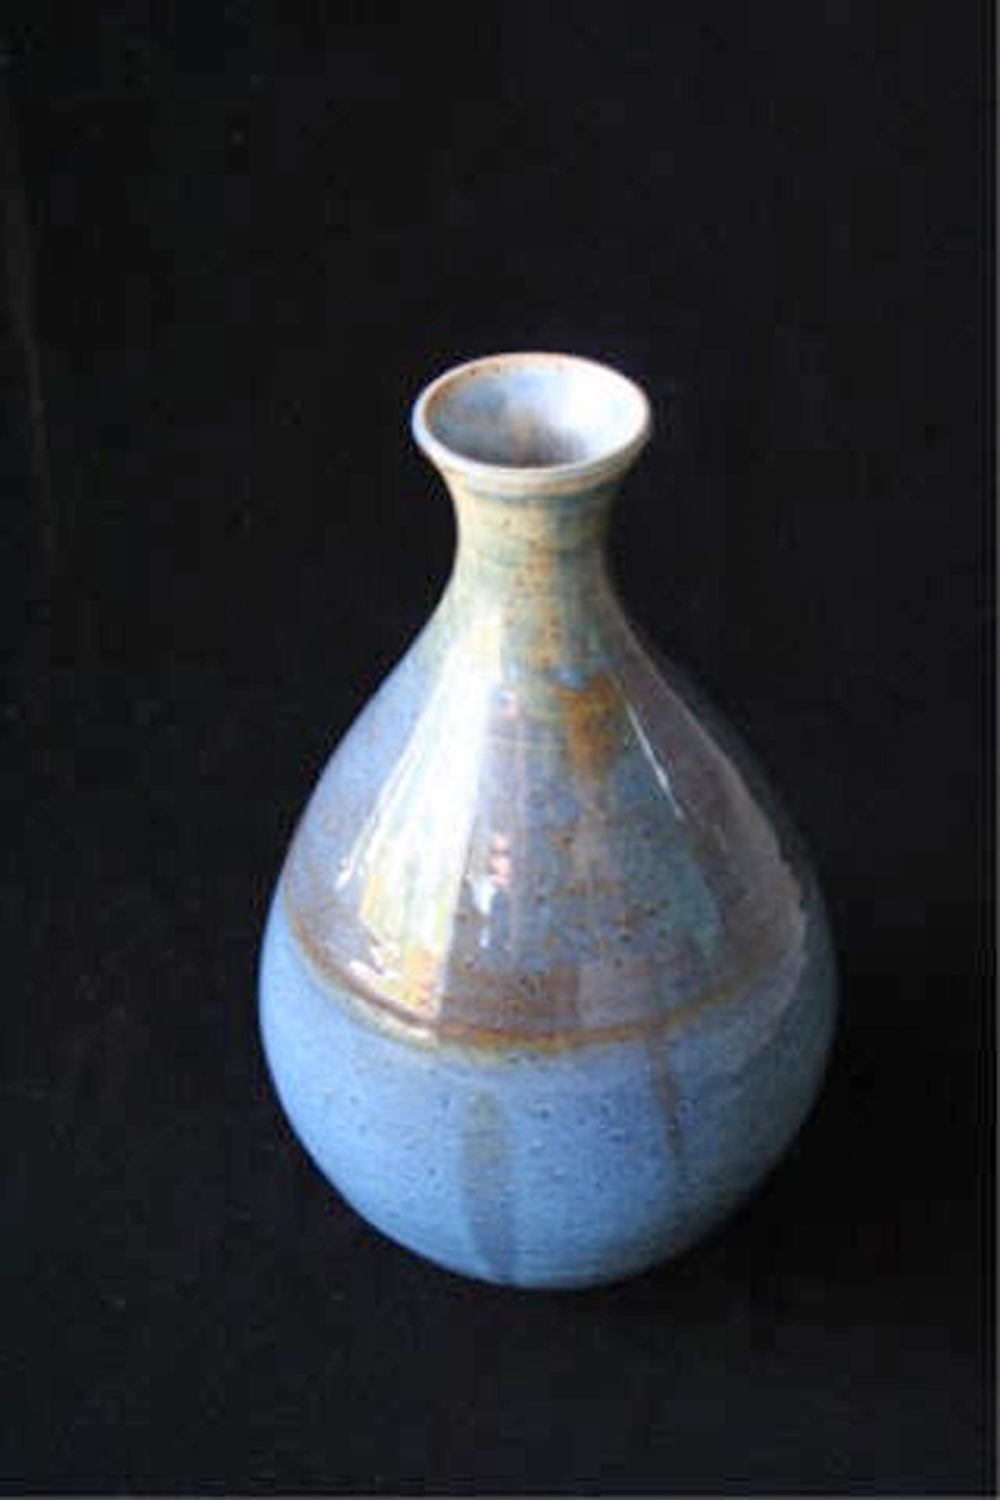 "One Blue Tear  , 2007, wheel-thrown stoneware Fired at cone 6 oxidation, 9"" h x 5 1/2"" diaCollection of Mr. Charles Muñoz, Naples, FL"